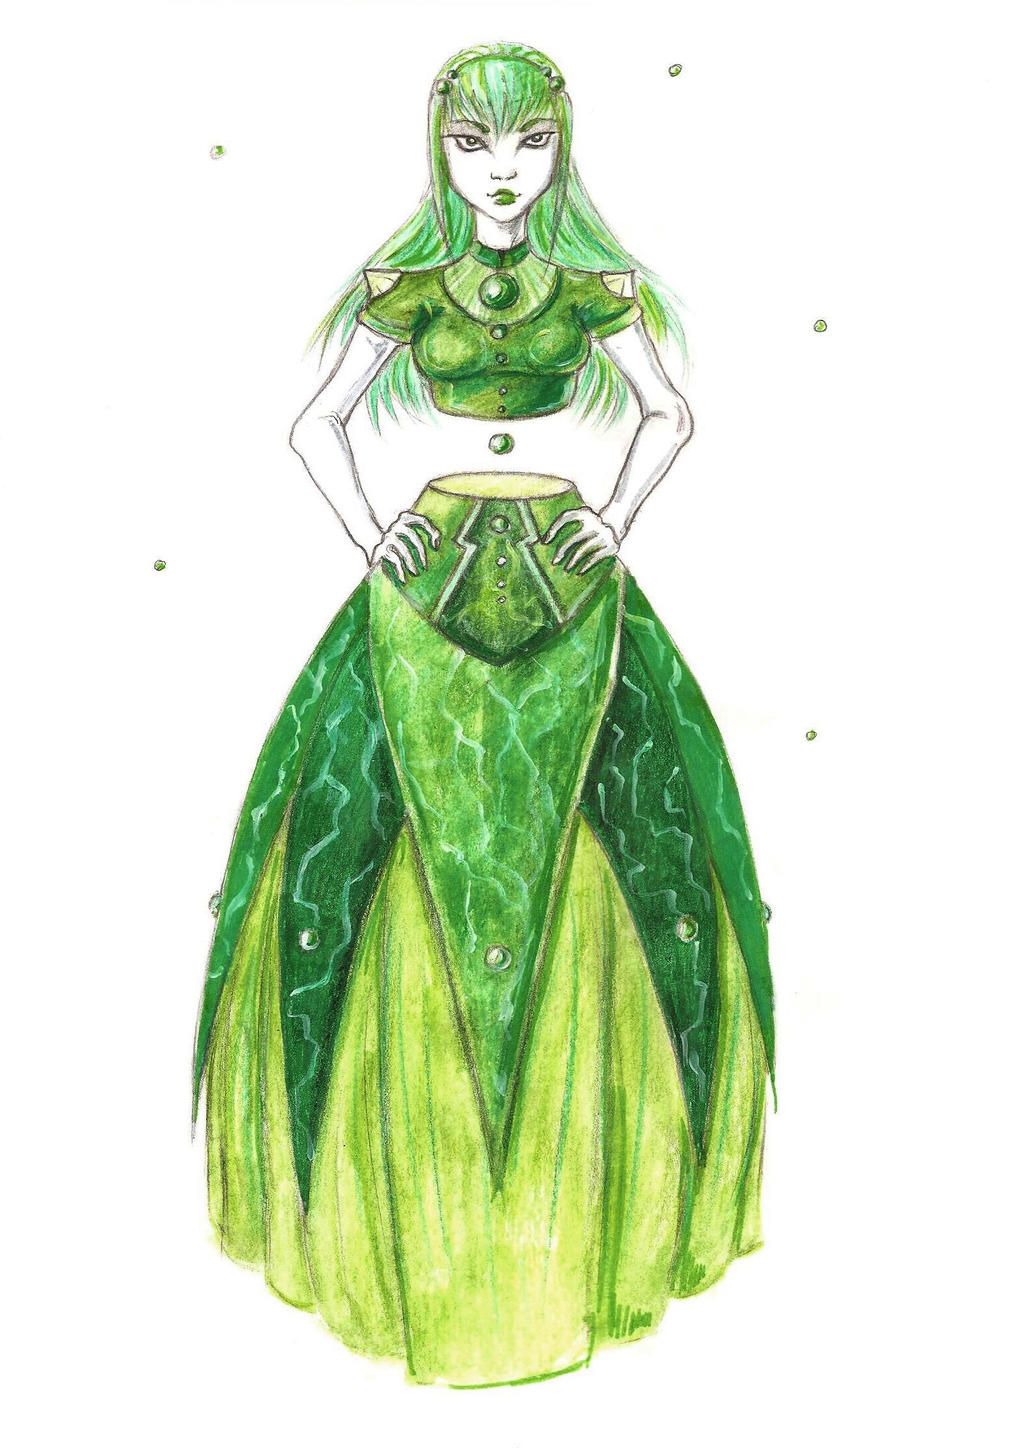 Malachite Princess by silverpen1431